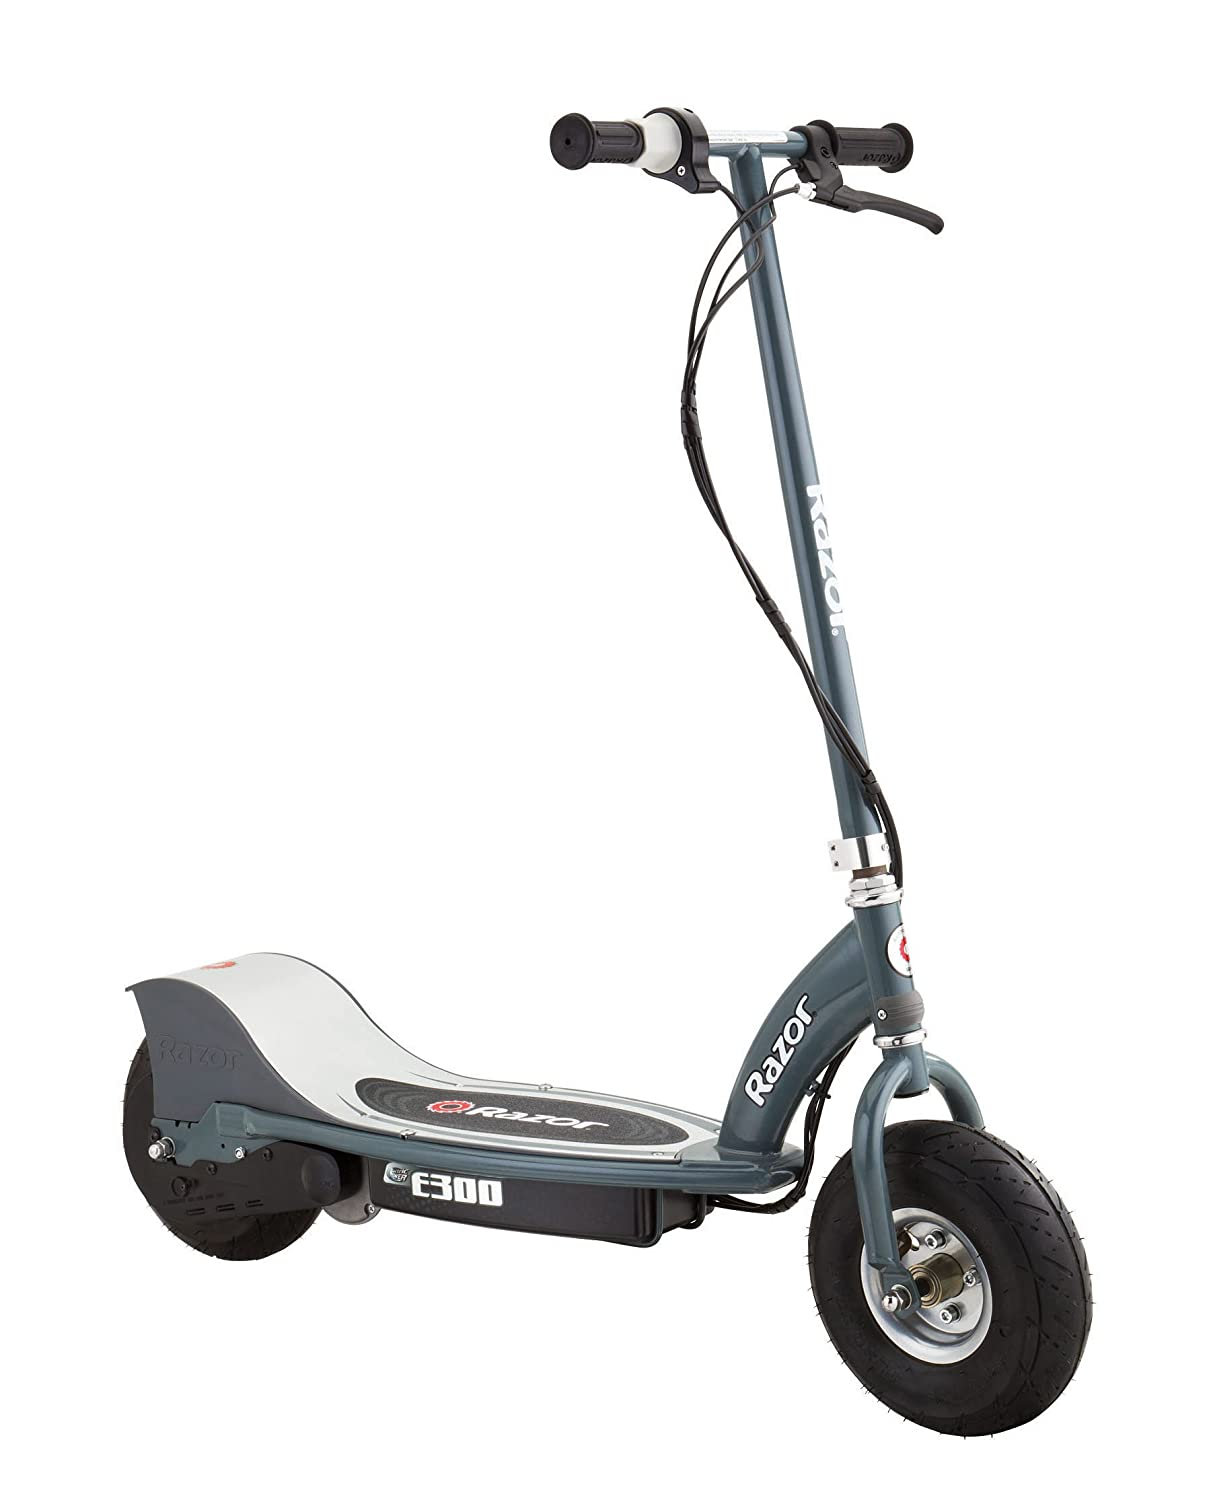 electric scooter bike gray teens adults motorized bicycle